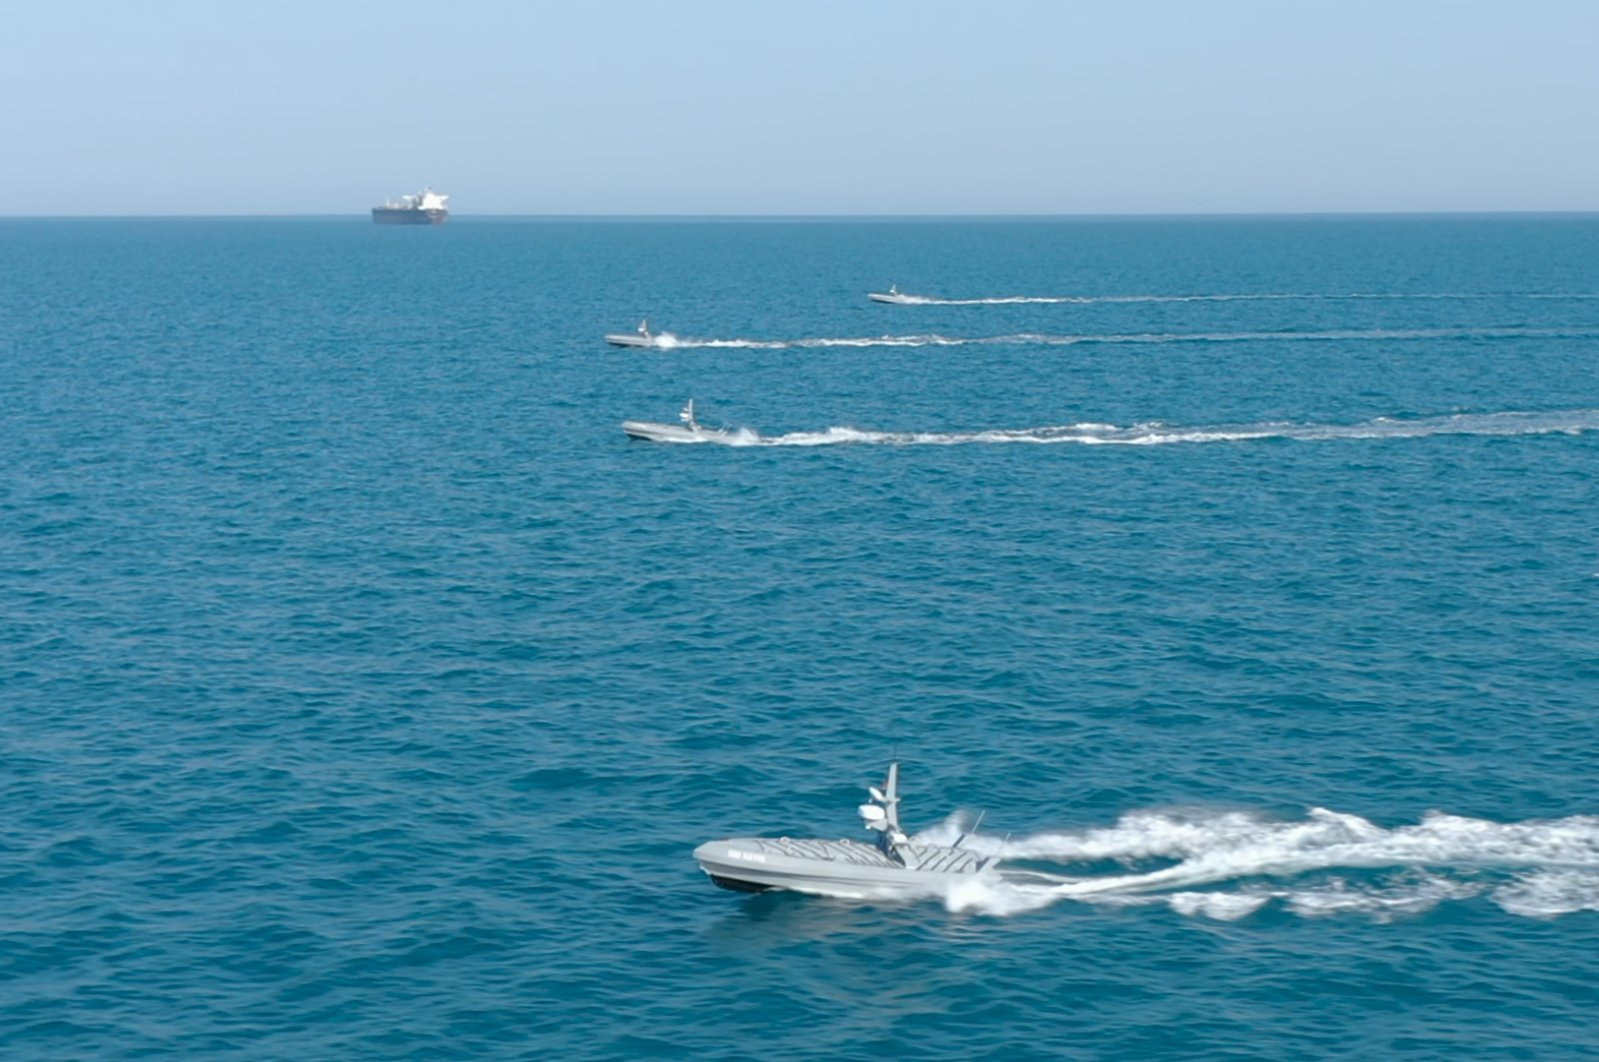 Aselsan's Albatros-S USVs are seen in the sea in this photo provided on Aug. 9, 2021. (Photo courtesy of SSB)